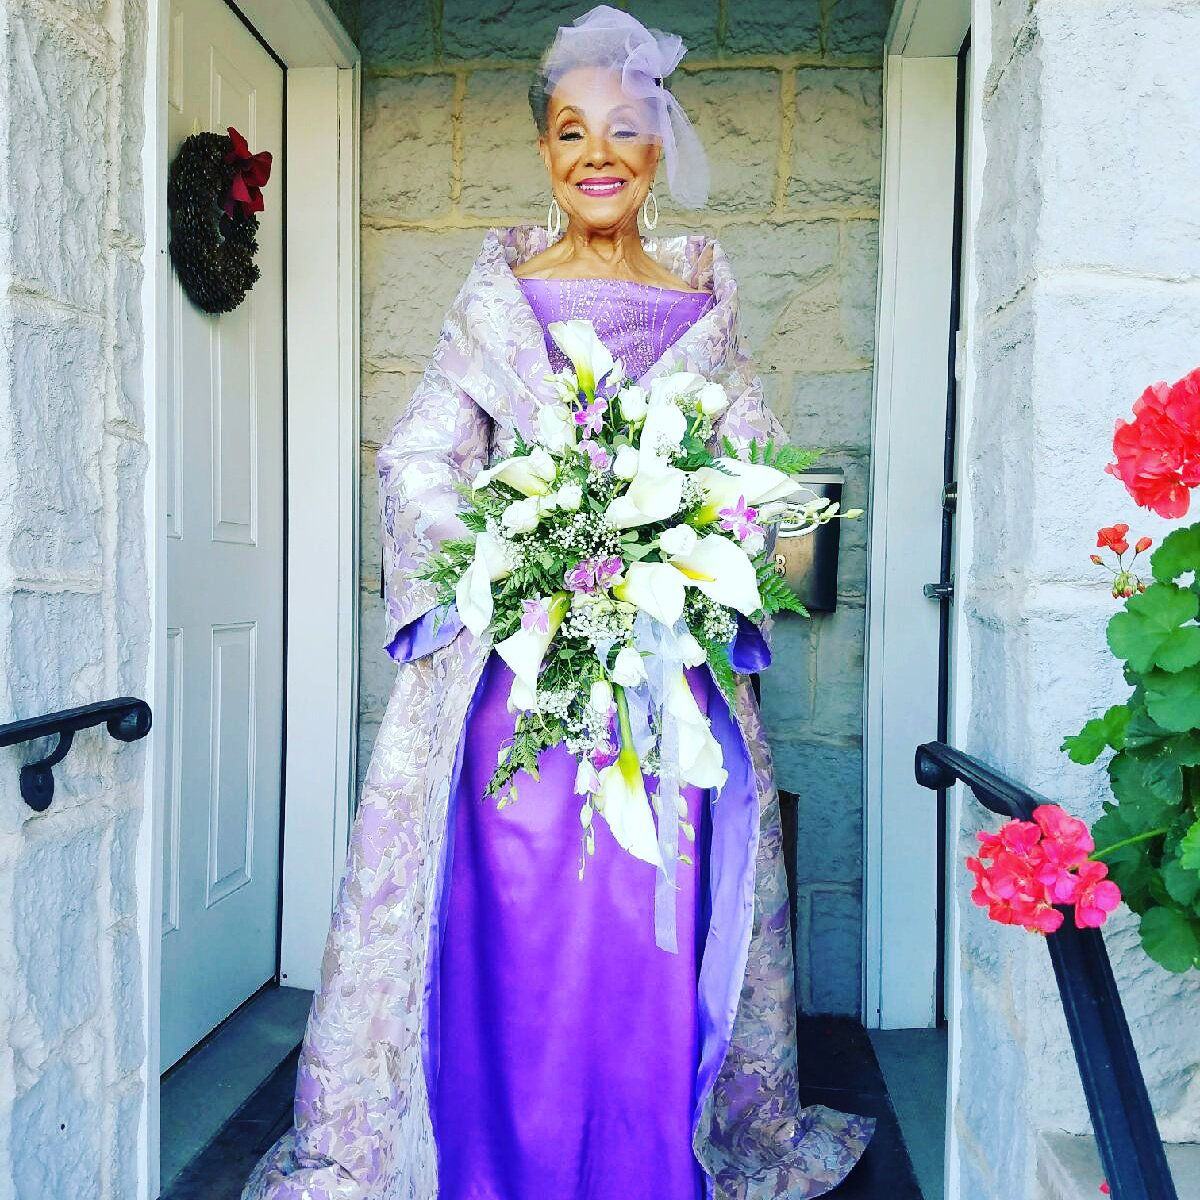 """Millie Taylor-Morrison, who was a model in the 1950s, designed the wedding dress herself. <a href=""""https://www.facebook.com/designermarcohall/"""" target=""""_blank"""">Designer Marco Hall</a> brought her vision to life, and<a href=""""http://www.tanikagreen.com/meet-the-stylist"""" target=""""_blank"""">Tanika Green</a>took care of the makeup."""